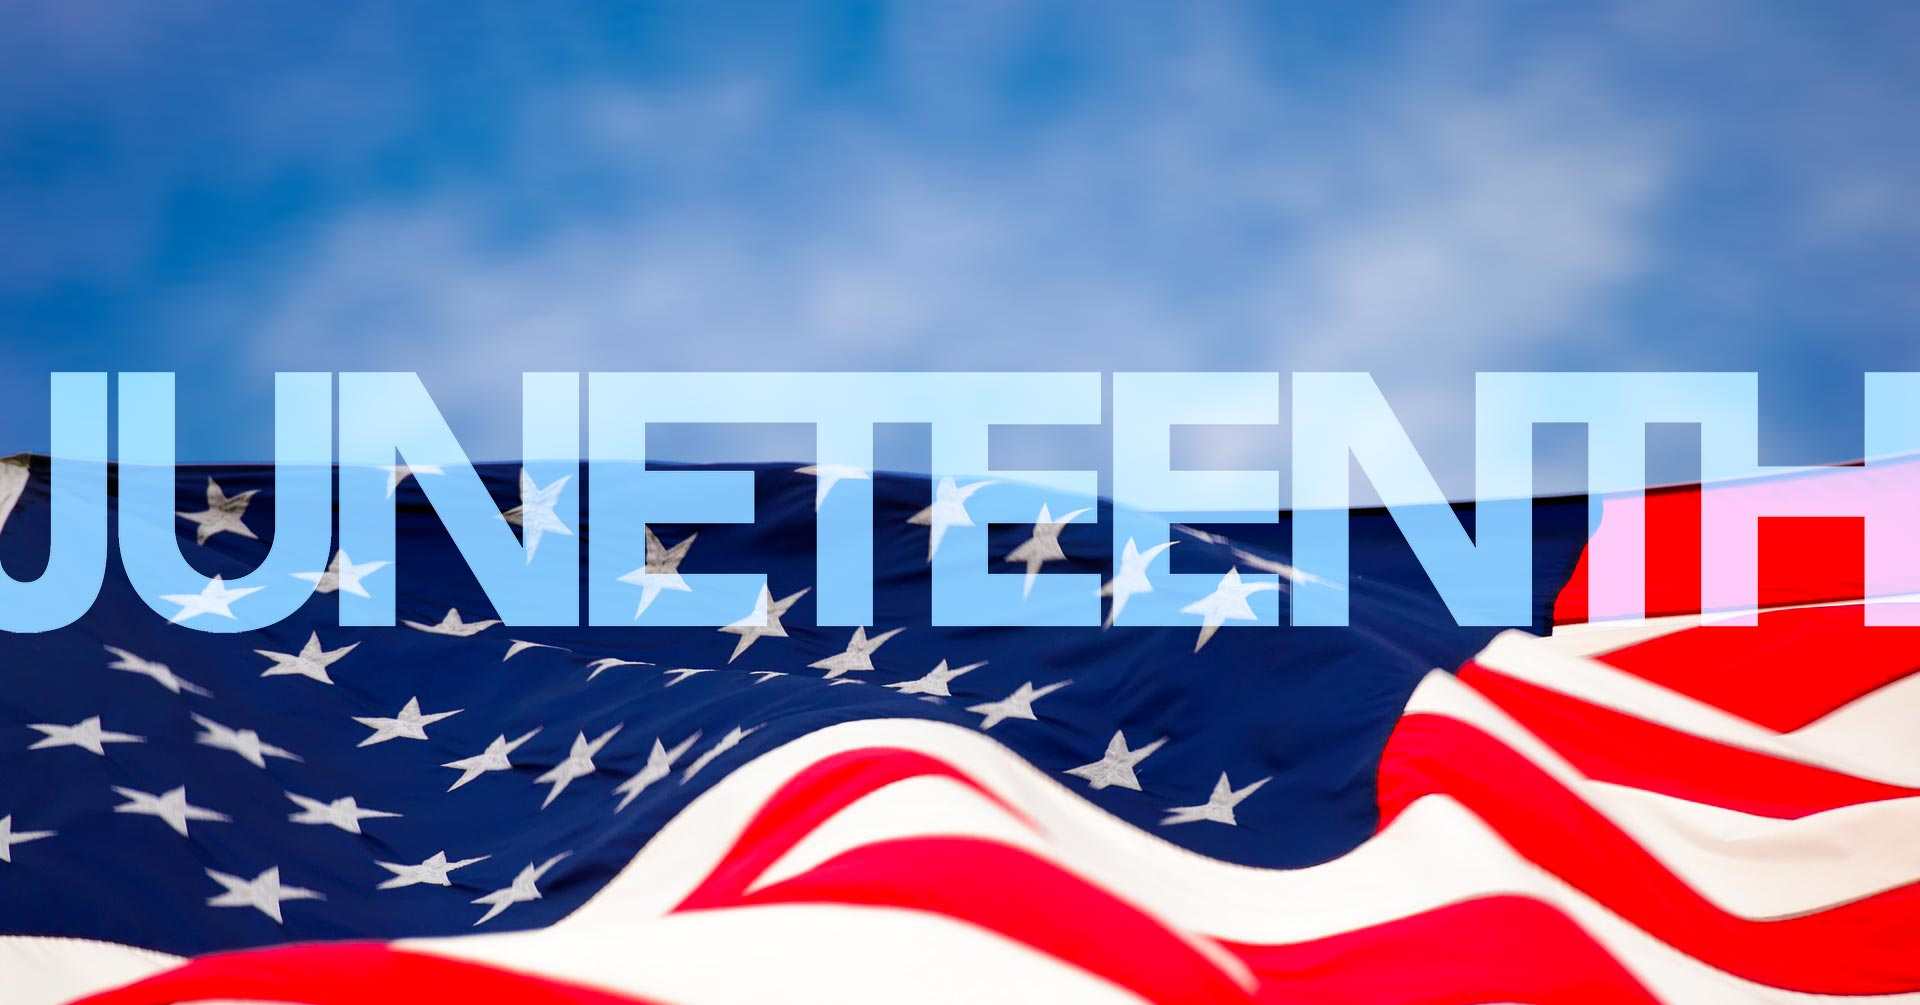 juneteenth is it a national holiday in pennsylvania